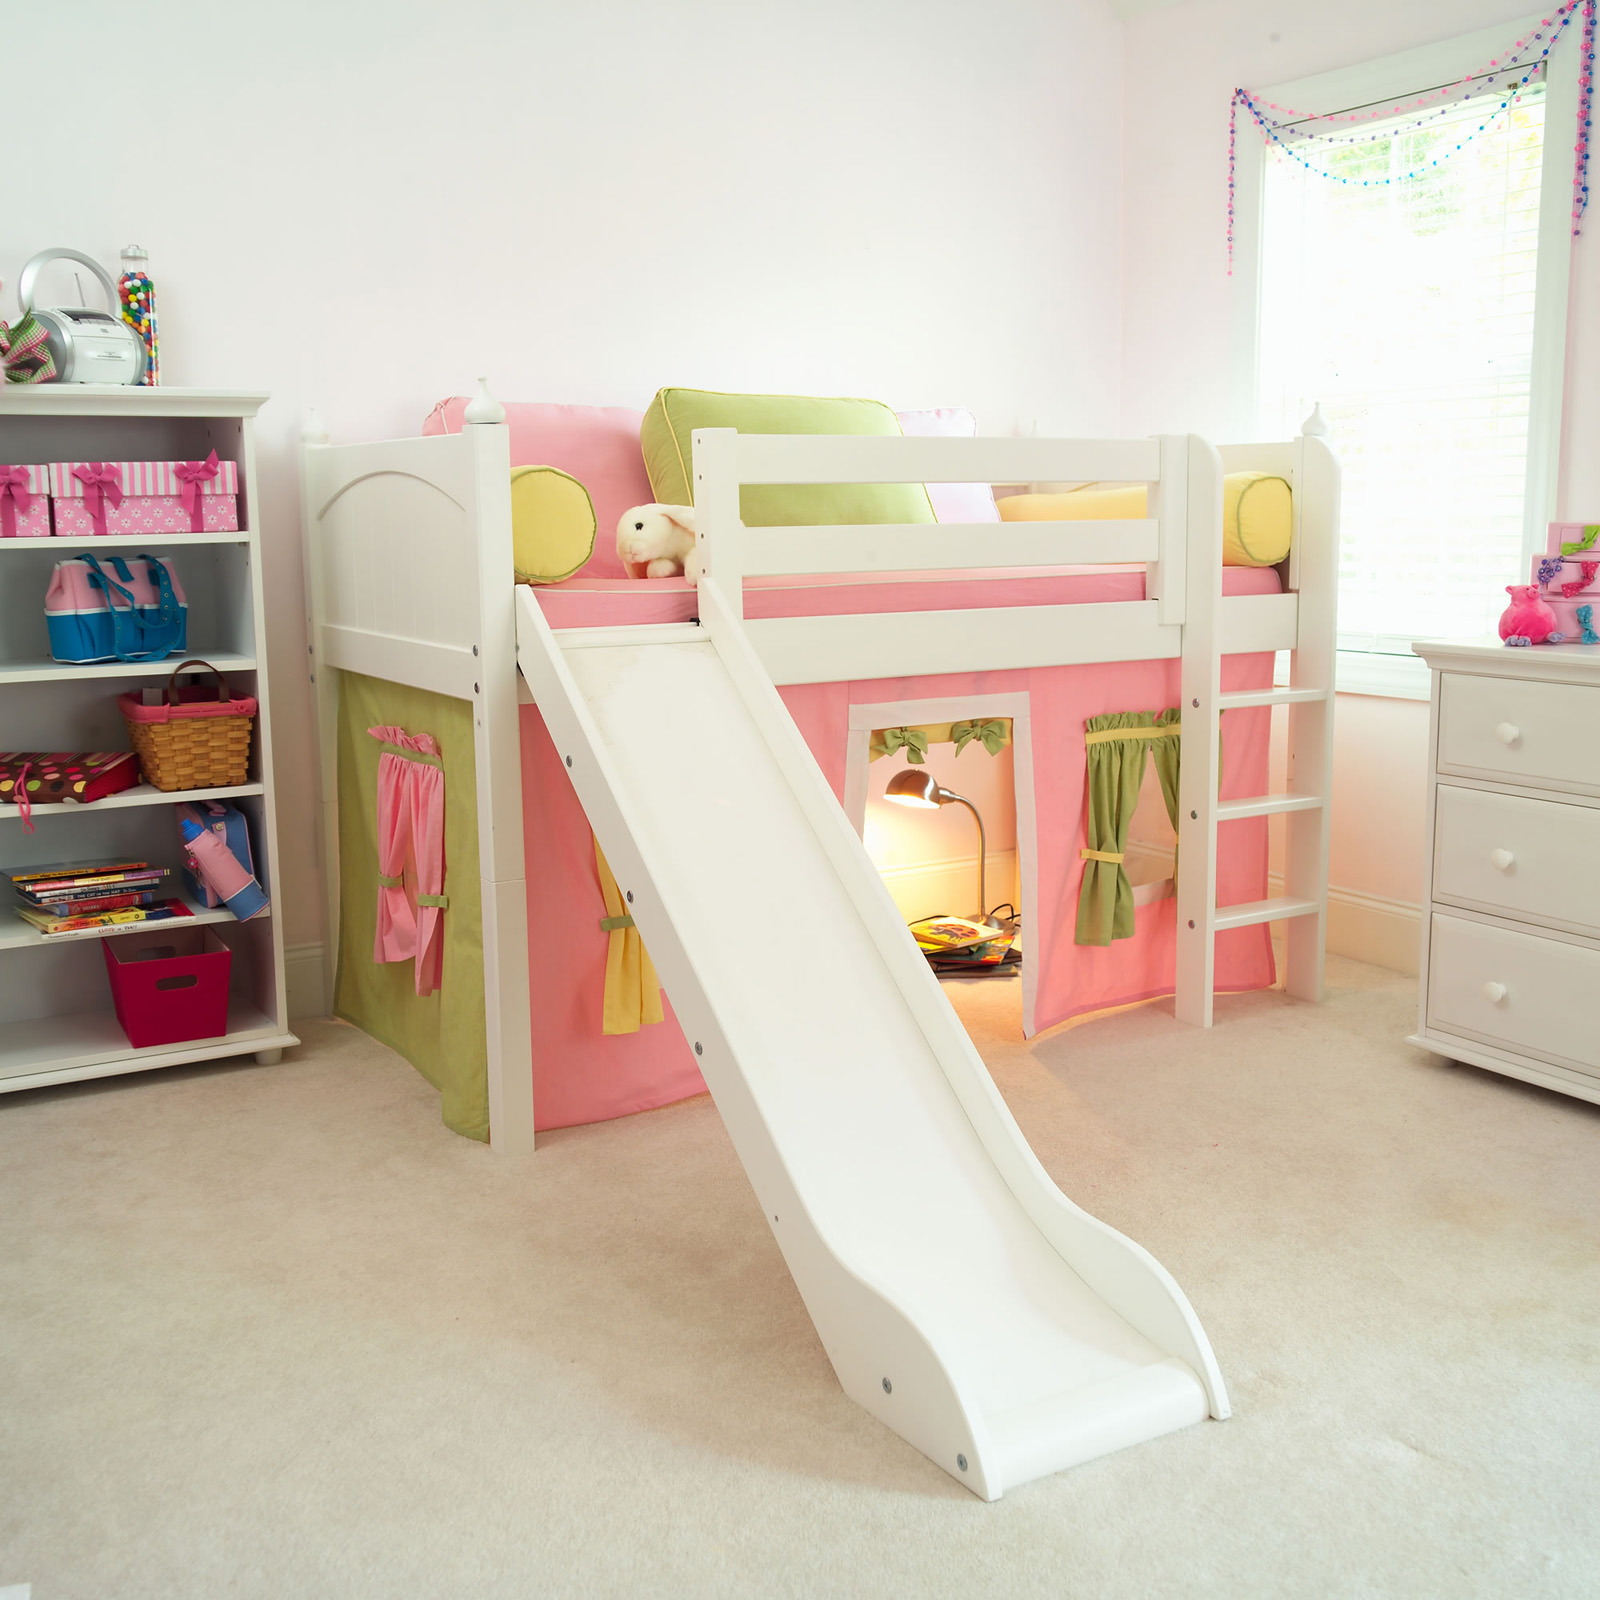 Bunk beds with slide and tent - Cottage Standard Low Loft Tent Bed Bunk Beds Loft Beds At Hayneedle